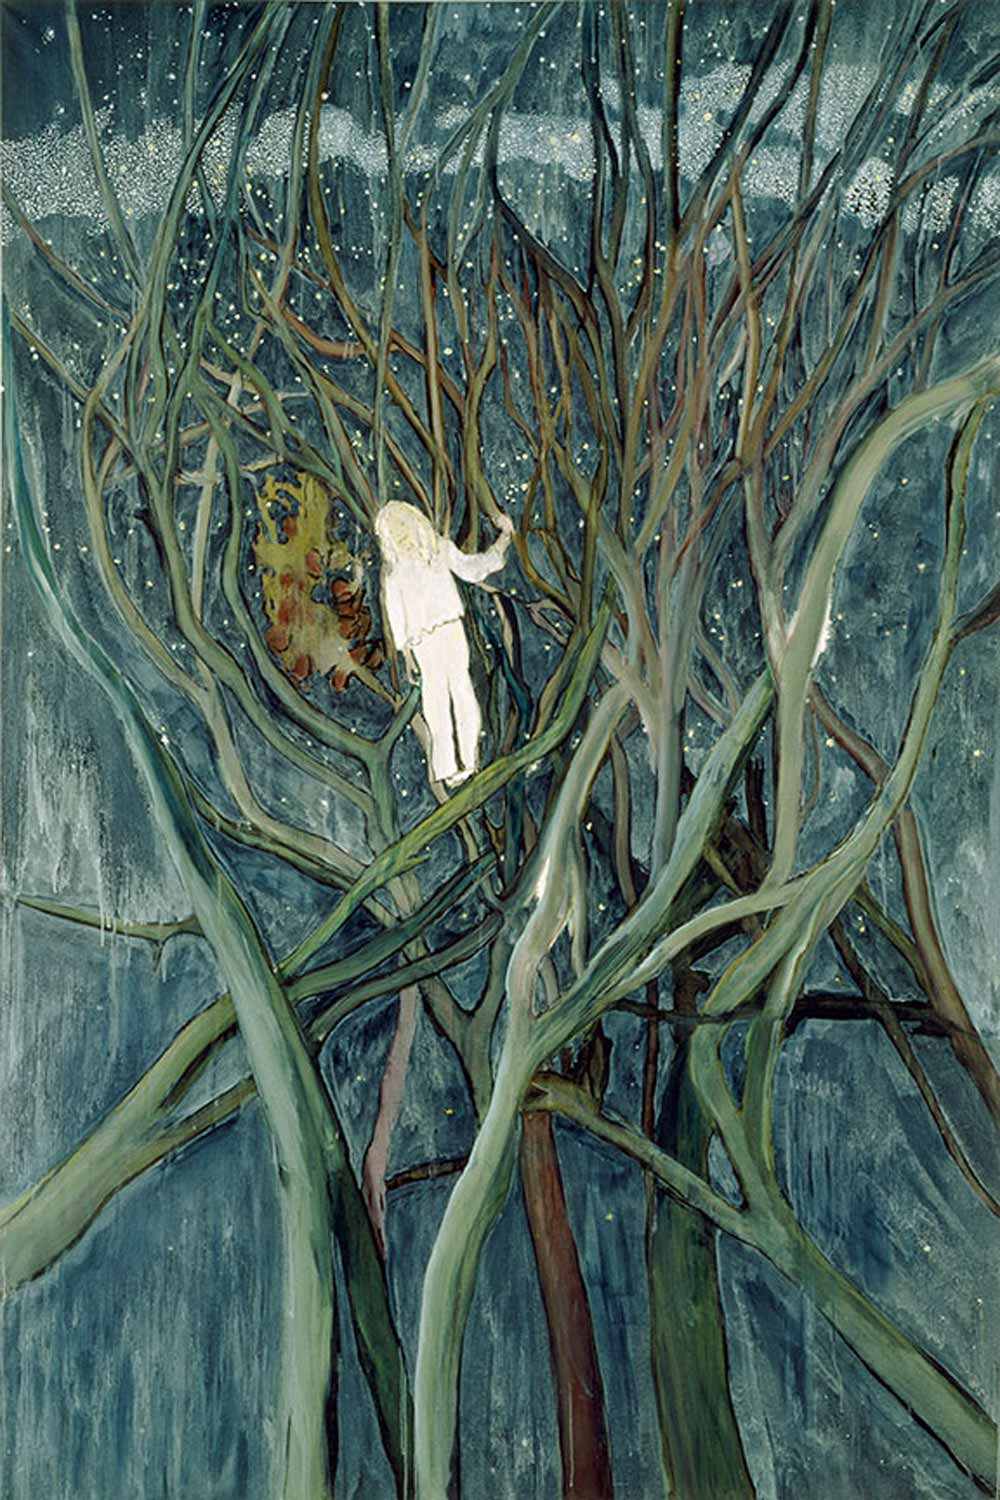 Girl-in-White-with-Trees,-2001-2-